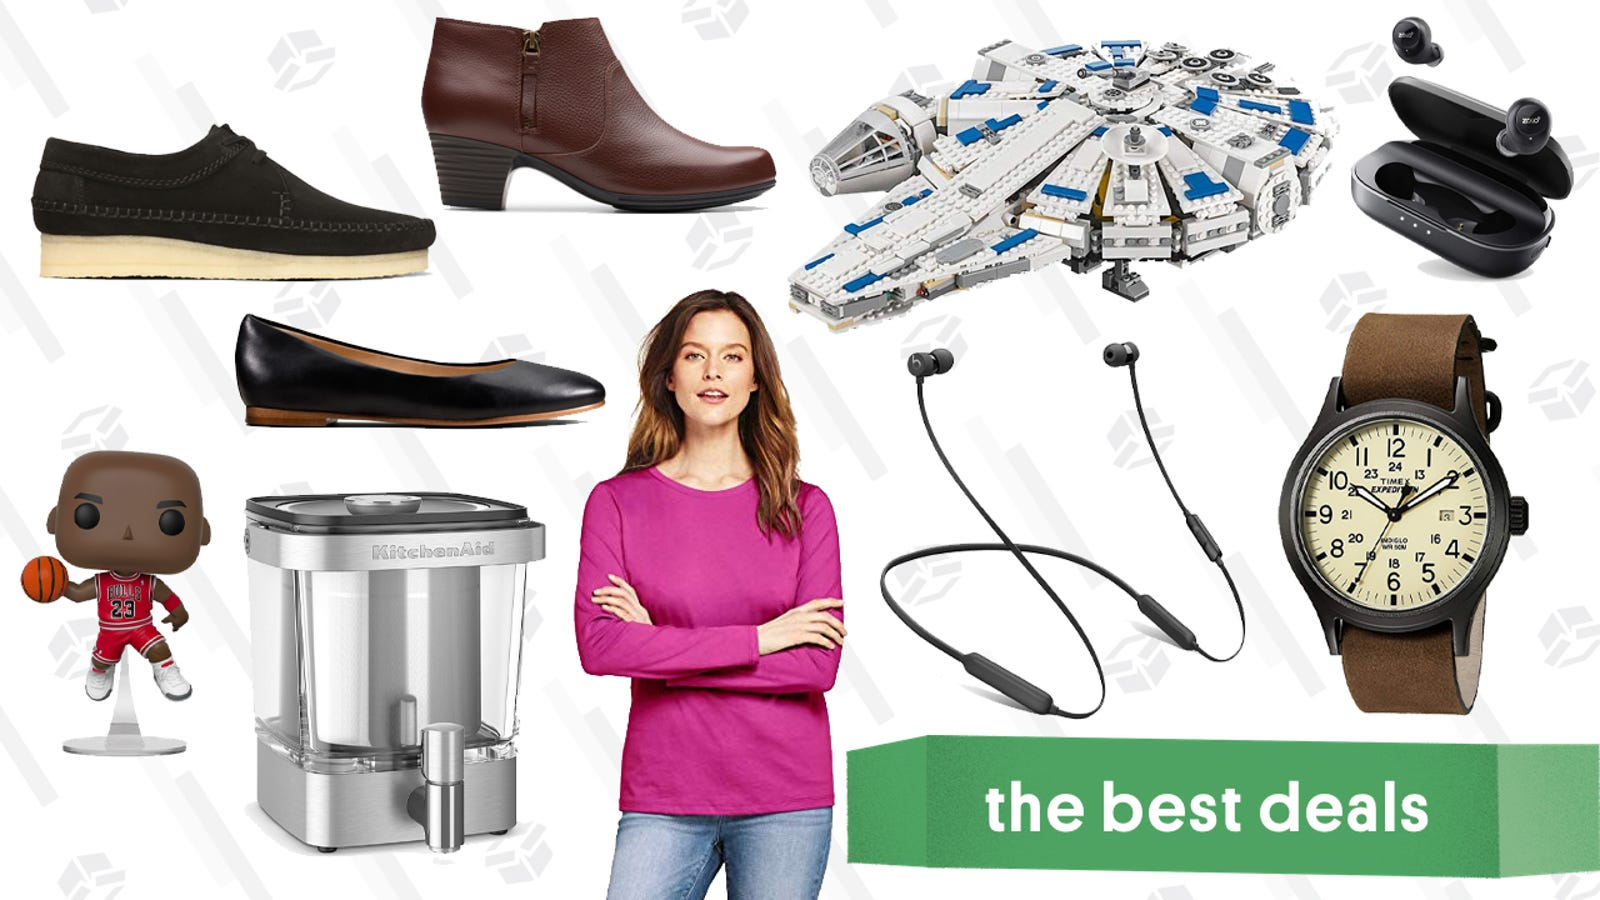 Friday's Best Deals: LEGO Millennium Falcon, Anker True Wireless Headphones, Too Faced Sale, and More